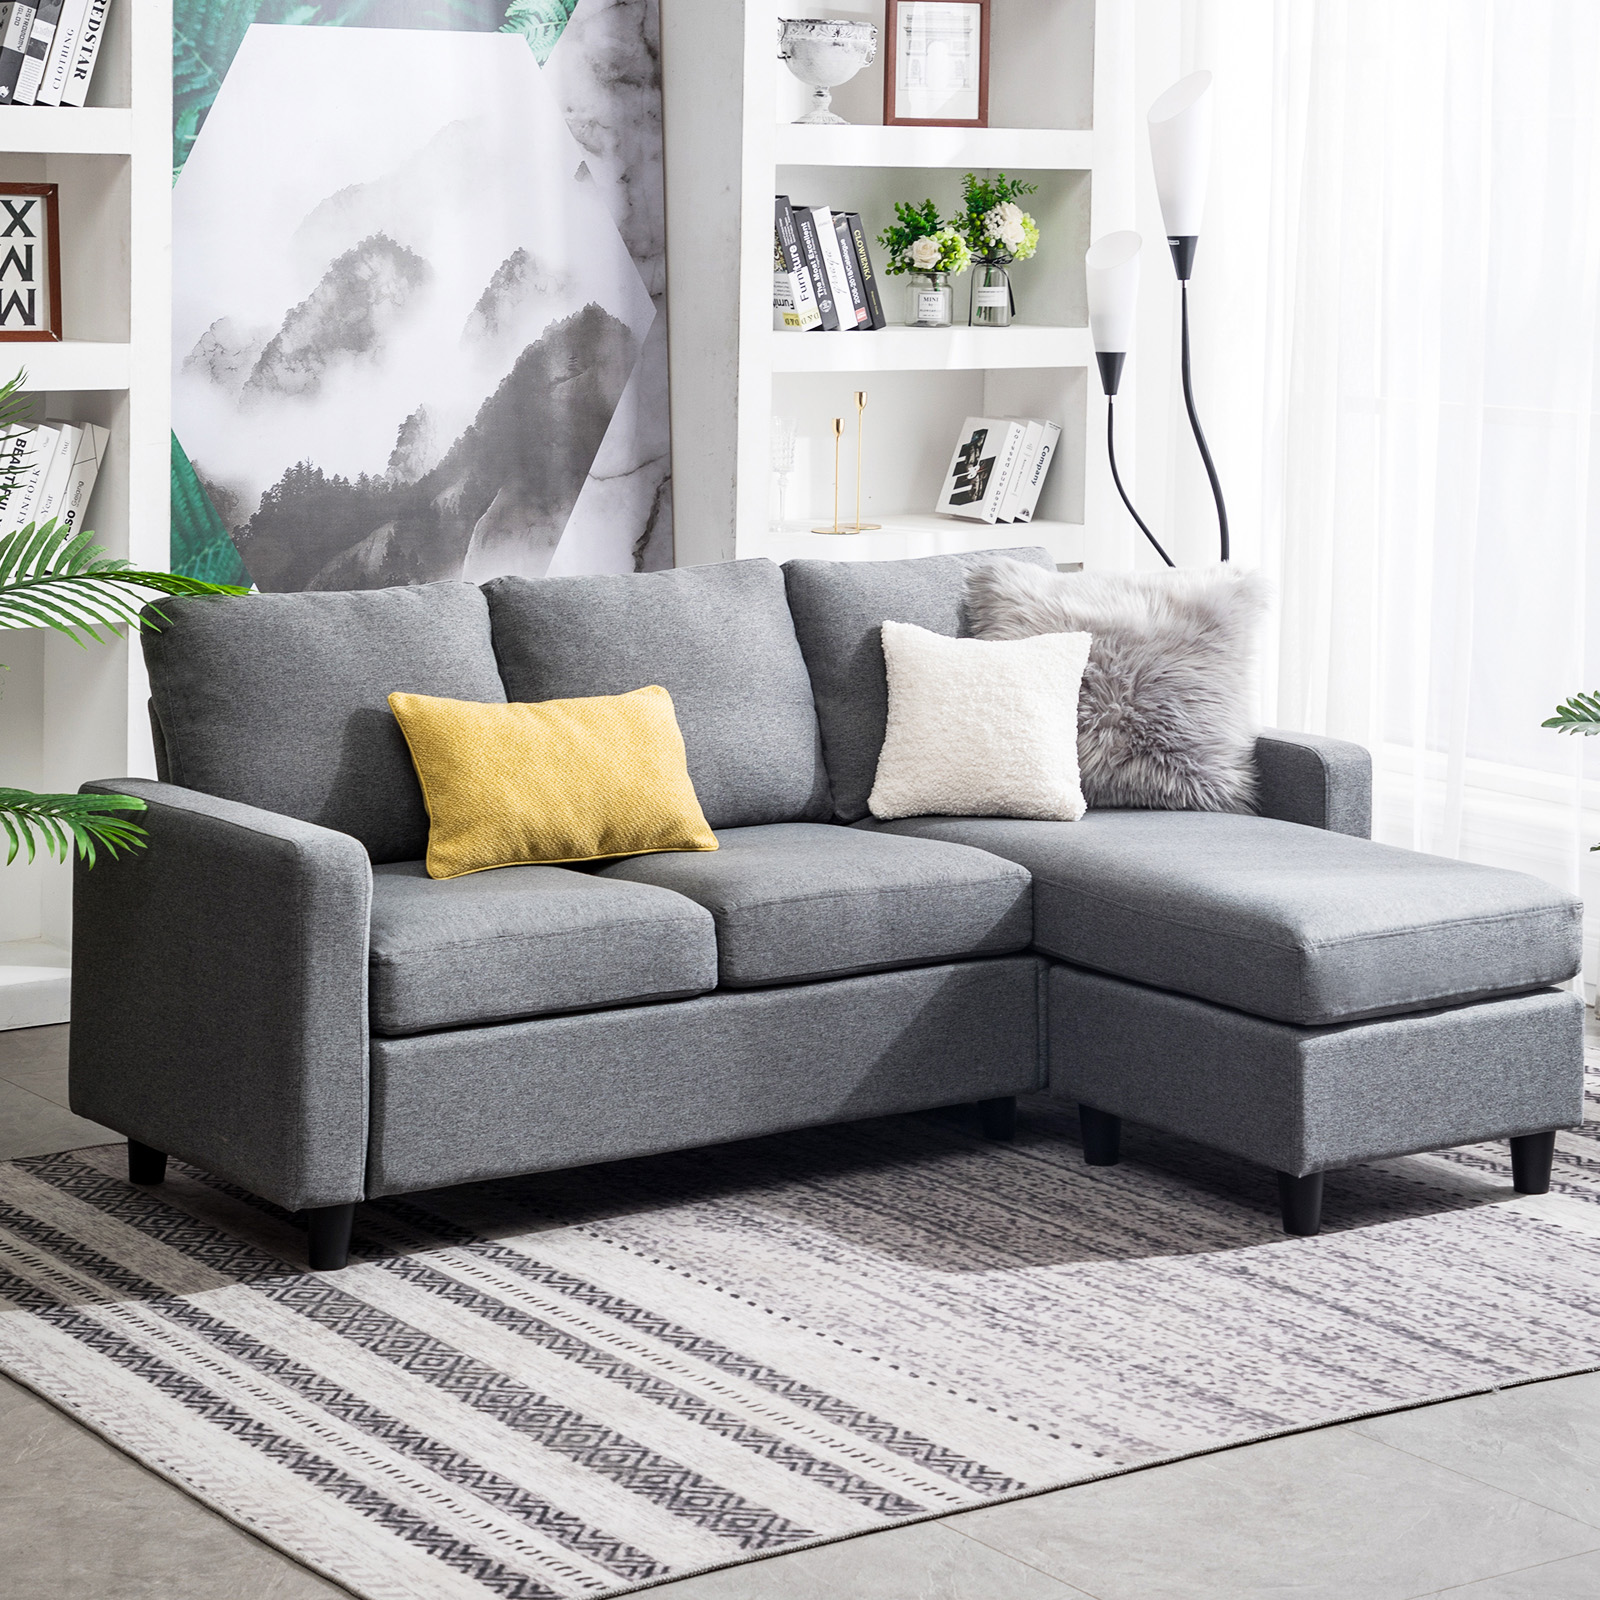 details about grey sectional sofa l shaped couch w reversible chaise for small space